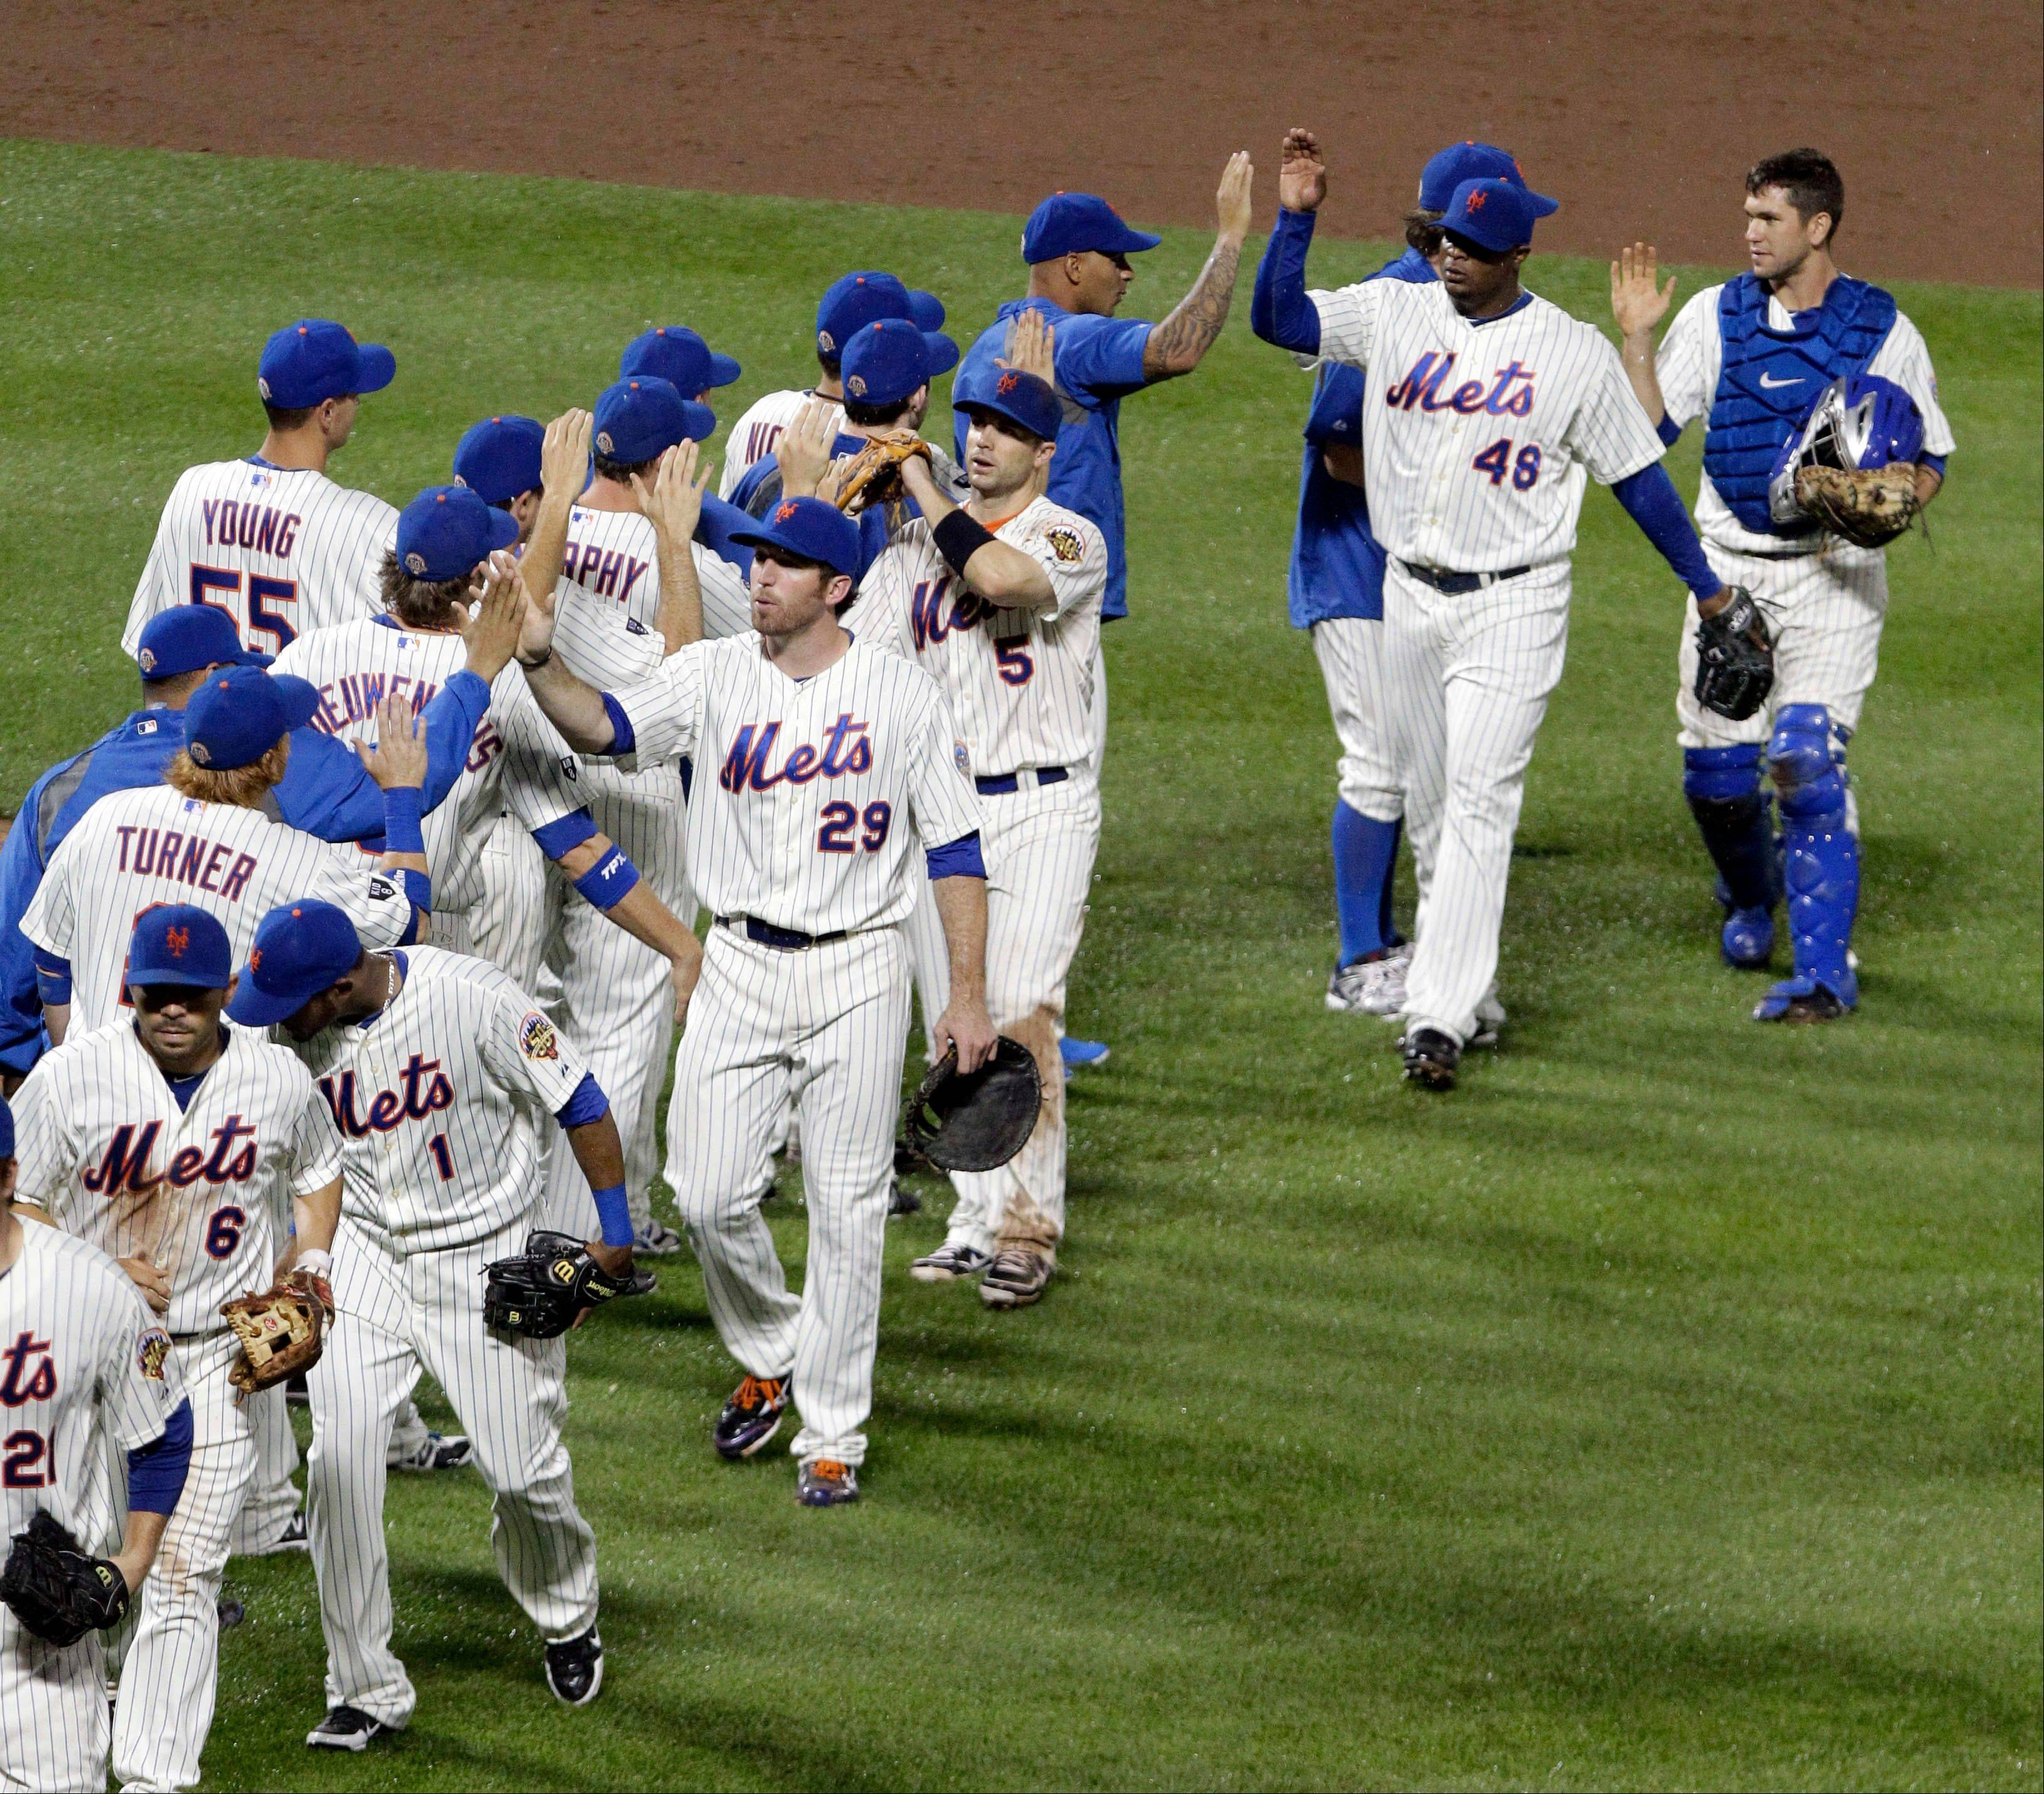 Frank Francisco (48), David Wright (5) and Ike Davis (29) celebrate with teammates Friday after a win at home against the Yankees.